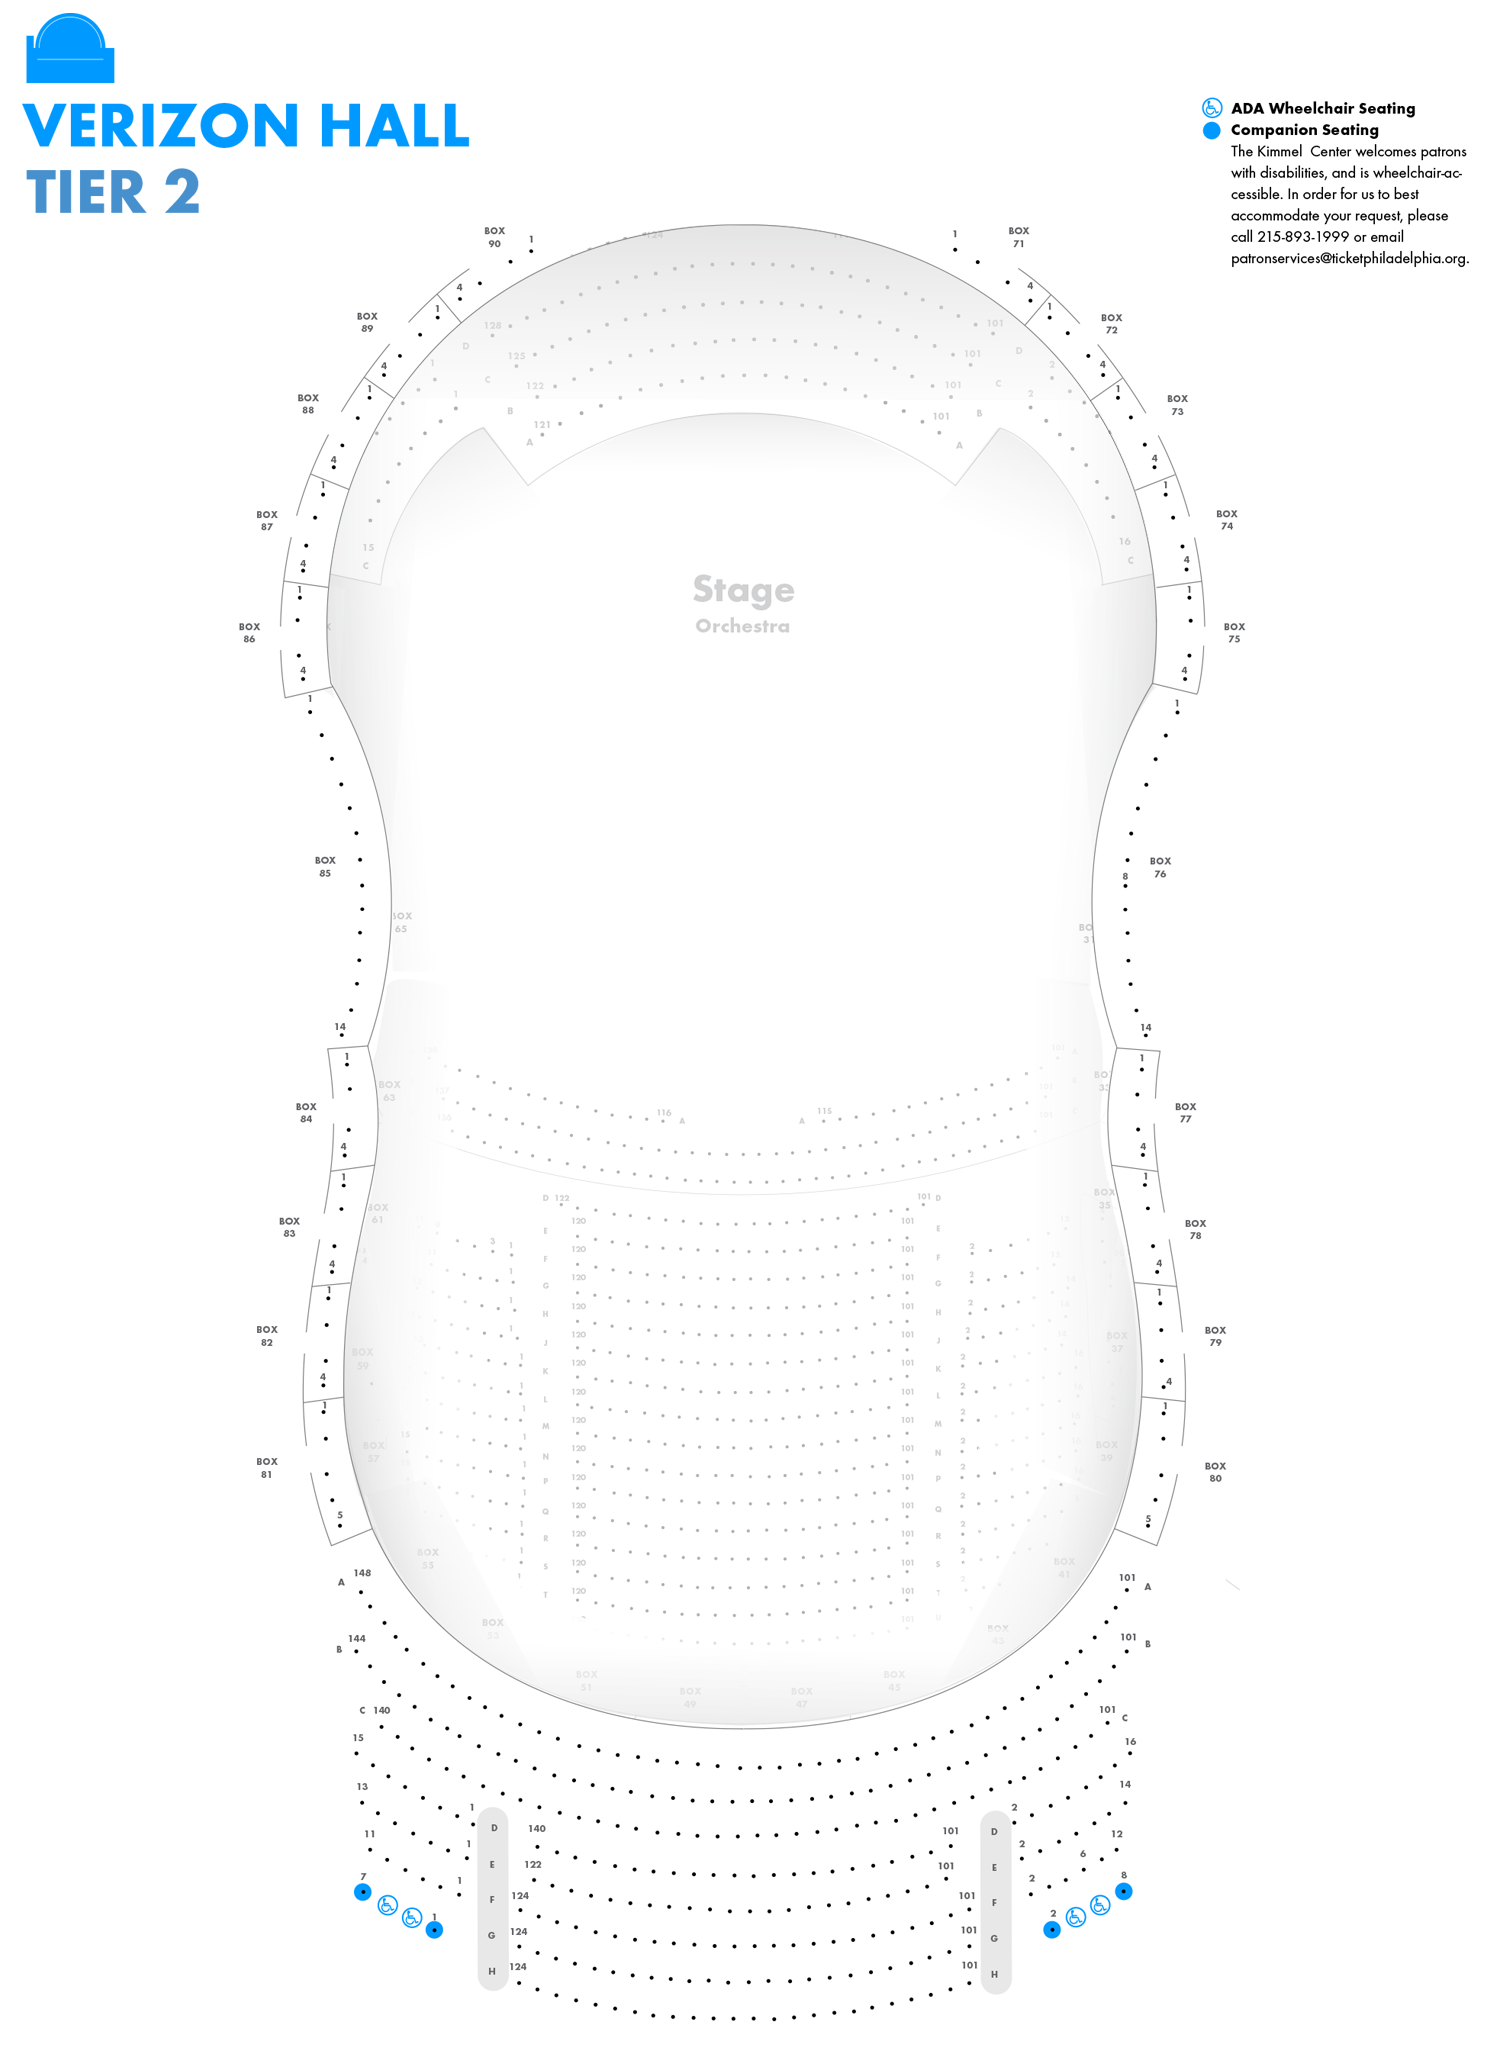 Verizon Hall - Second Tier - Seating Chart